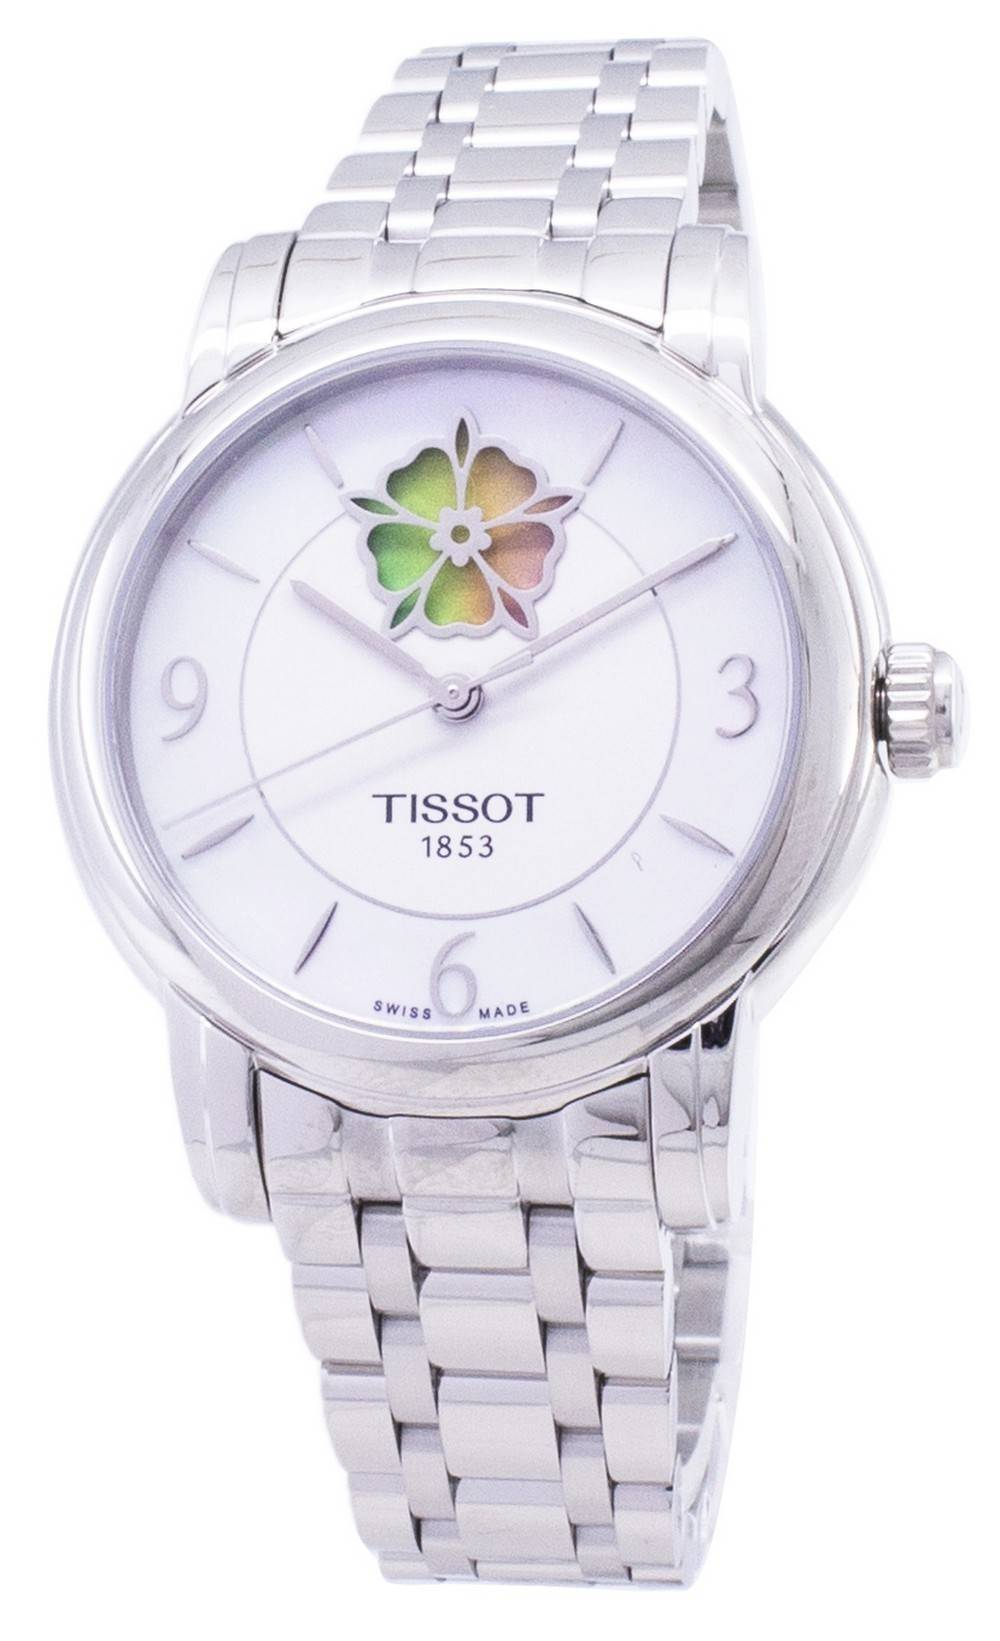 T-Lady T050.207.11.117.05 T0502071111705 Automatic Women's Watch